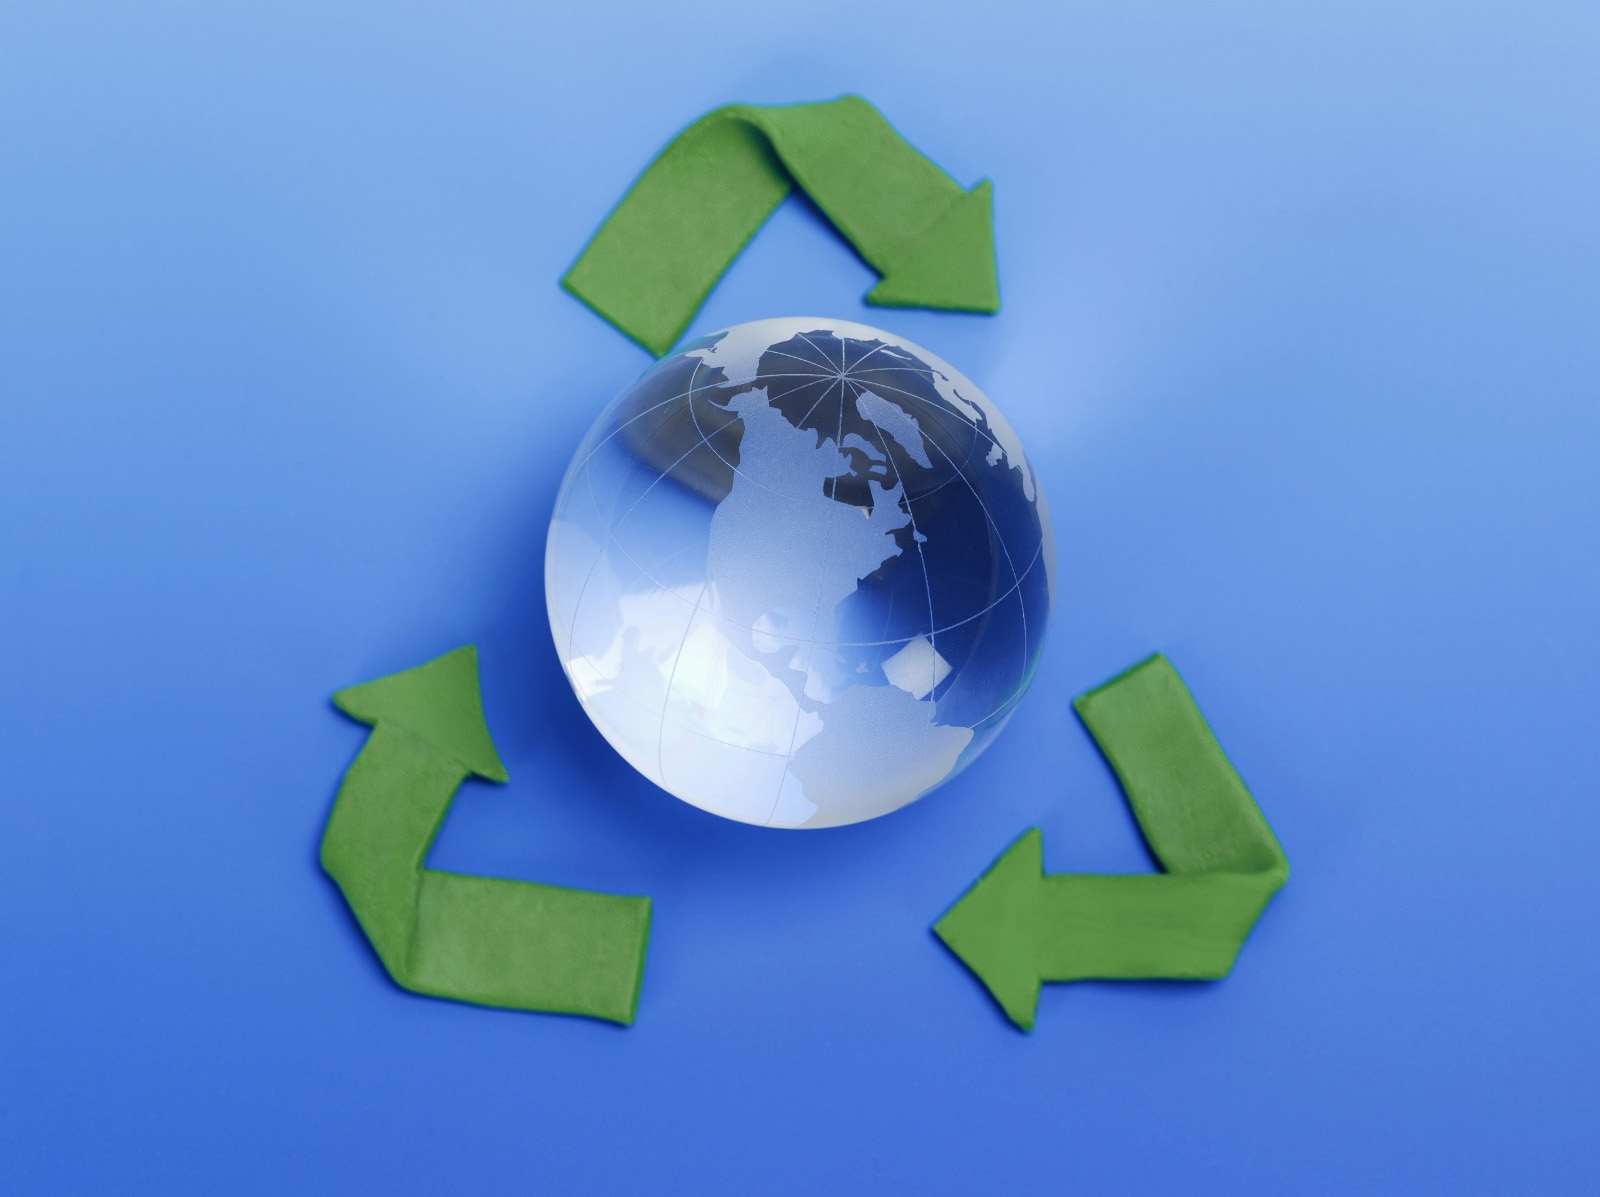 WEEE Recycling Is Not Just Good Business – It's the Law